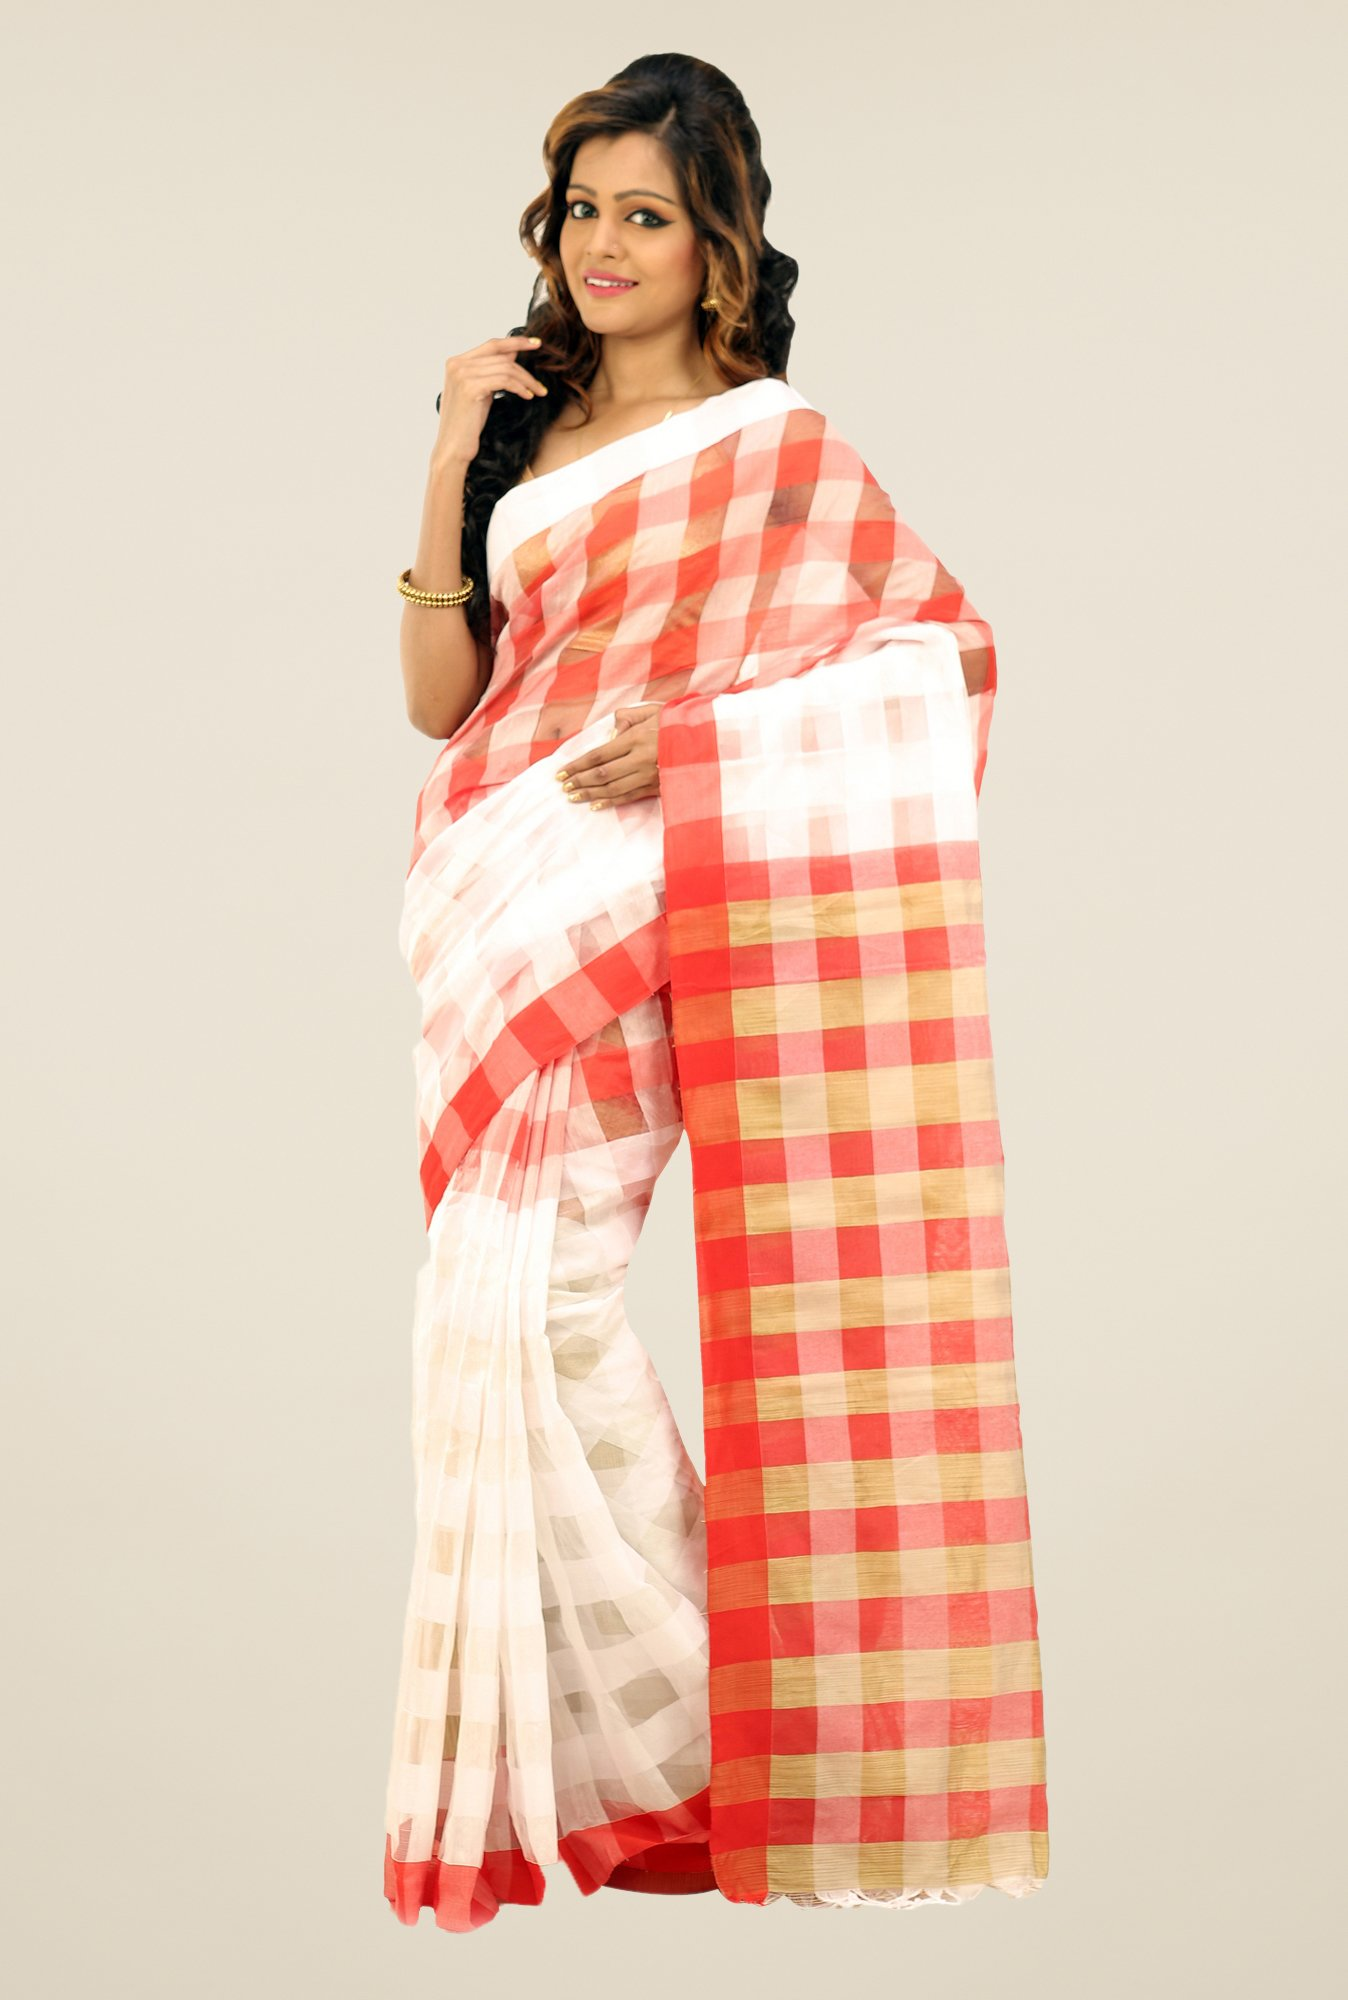 Bengal Handloom White & Red Cotton Silk Checked Saree